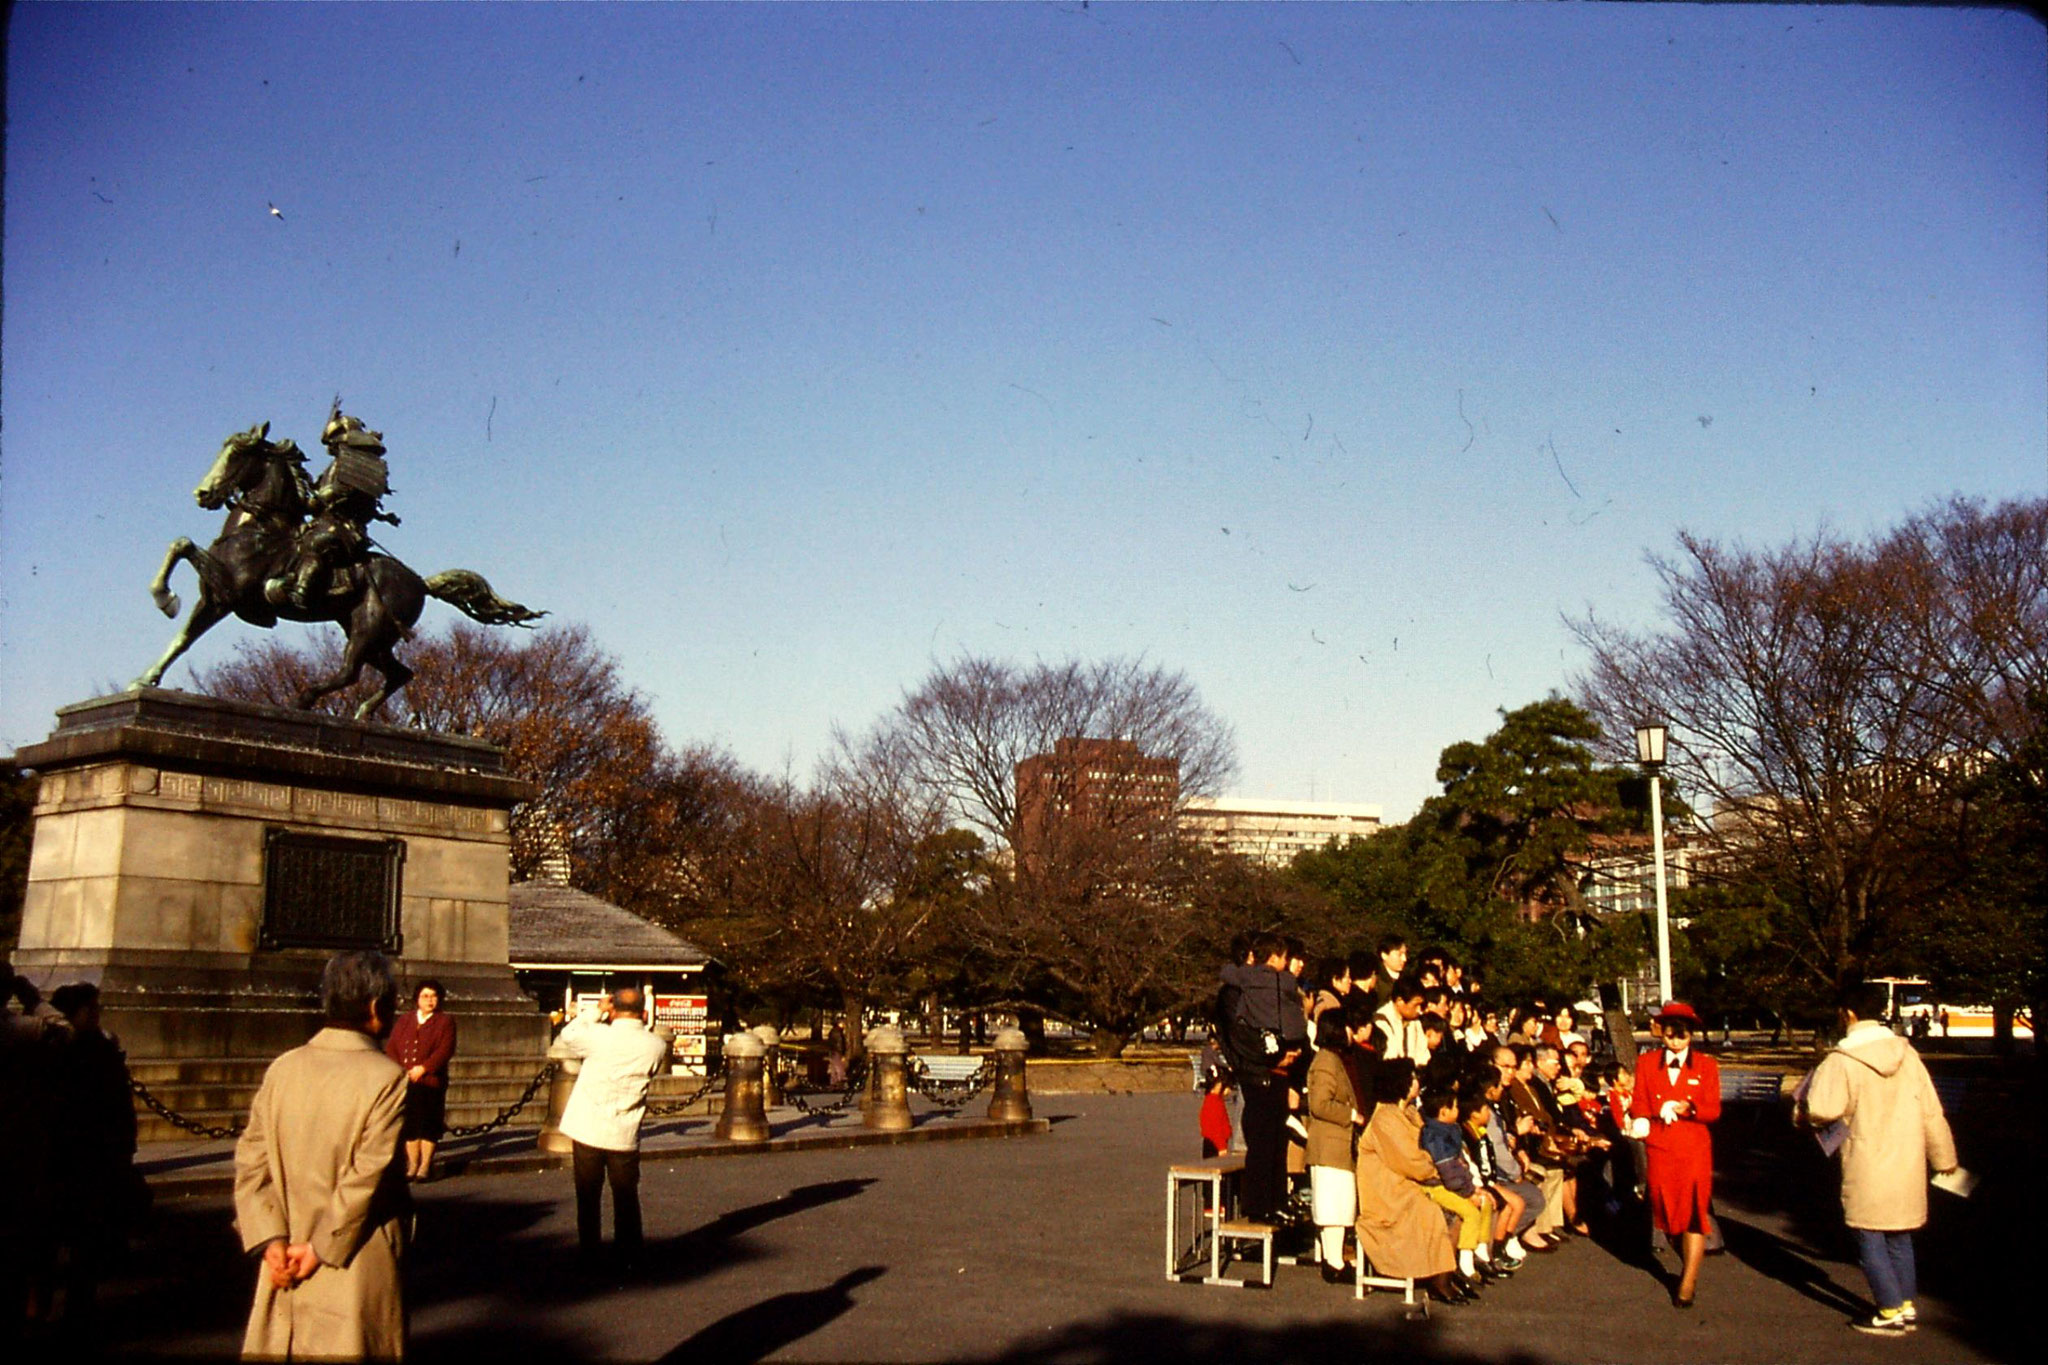 2/1/1989: 34: Imperial Palace